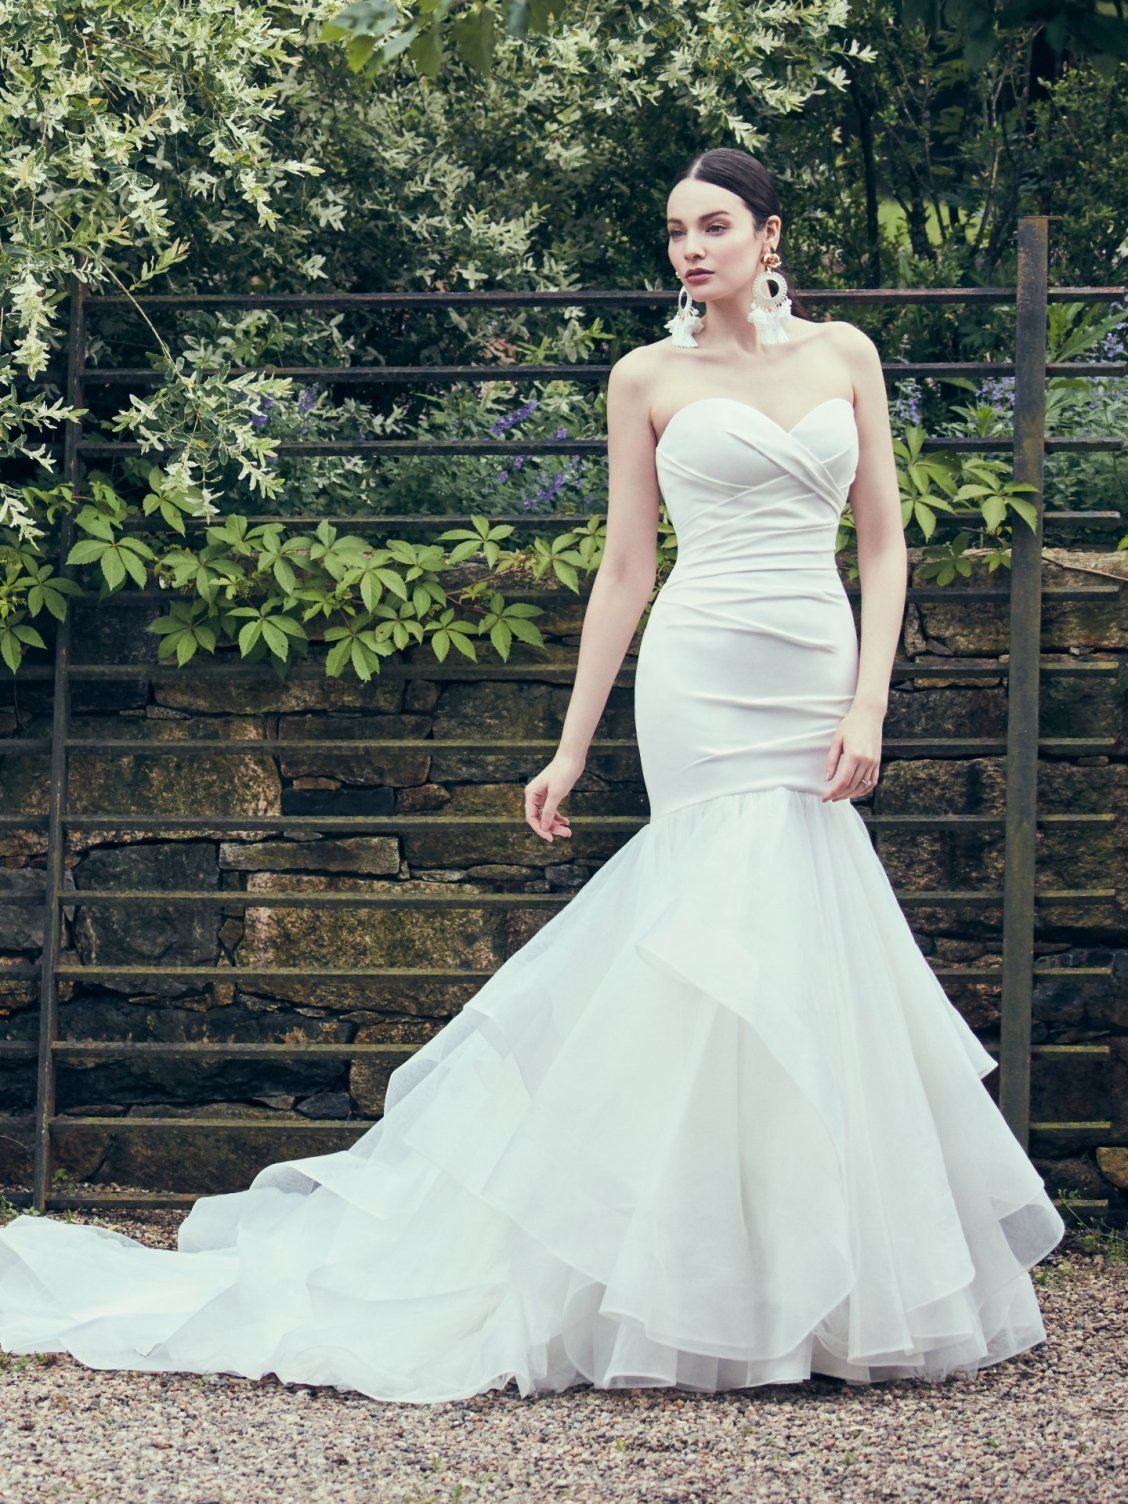 814613a93bcf0 Maggie Sottero - JACQUELINE, This chic fit-and-flare wedding dress features  a